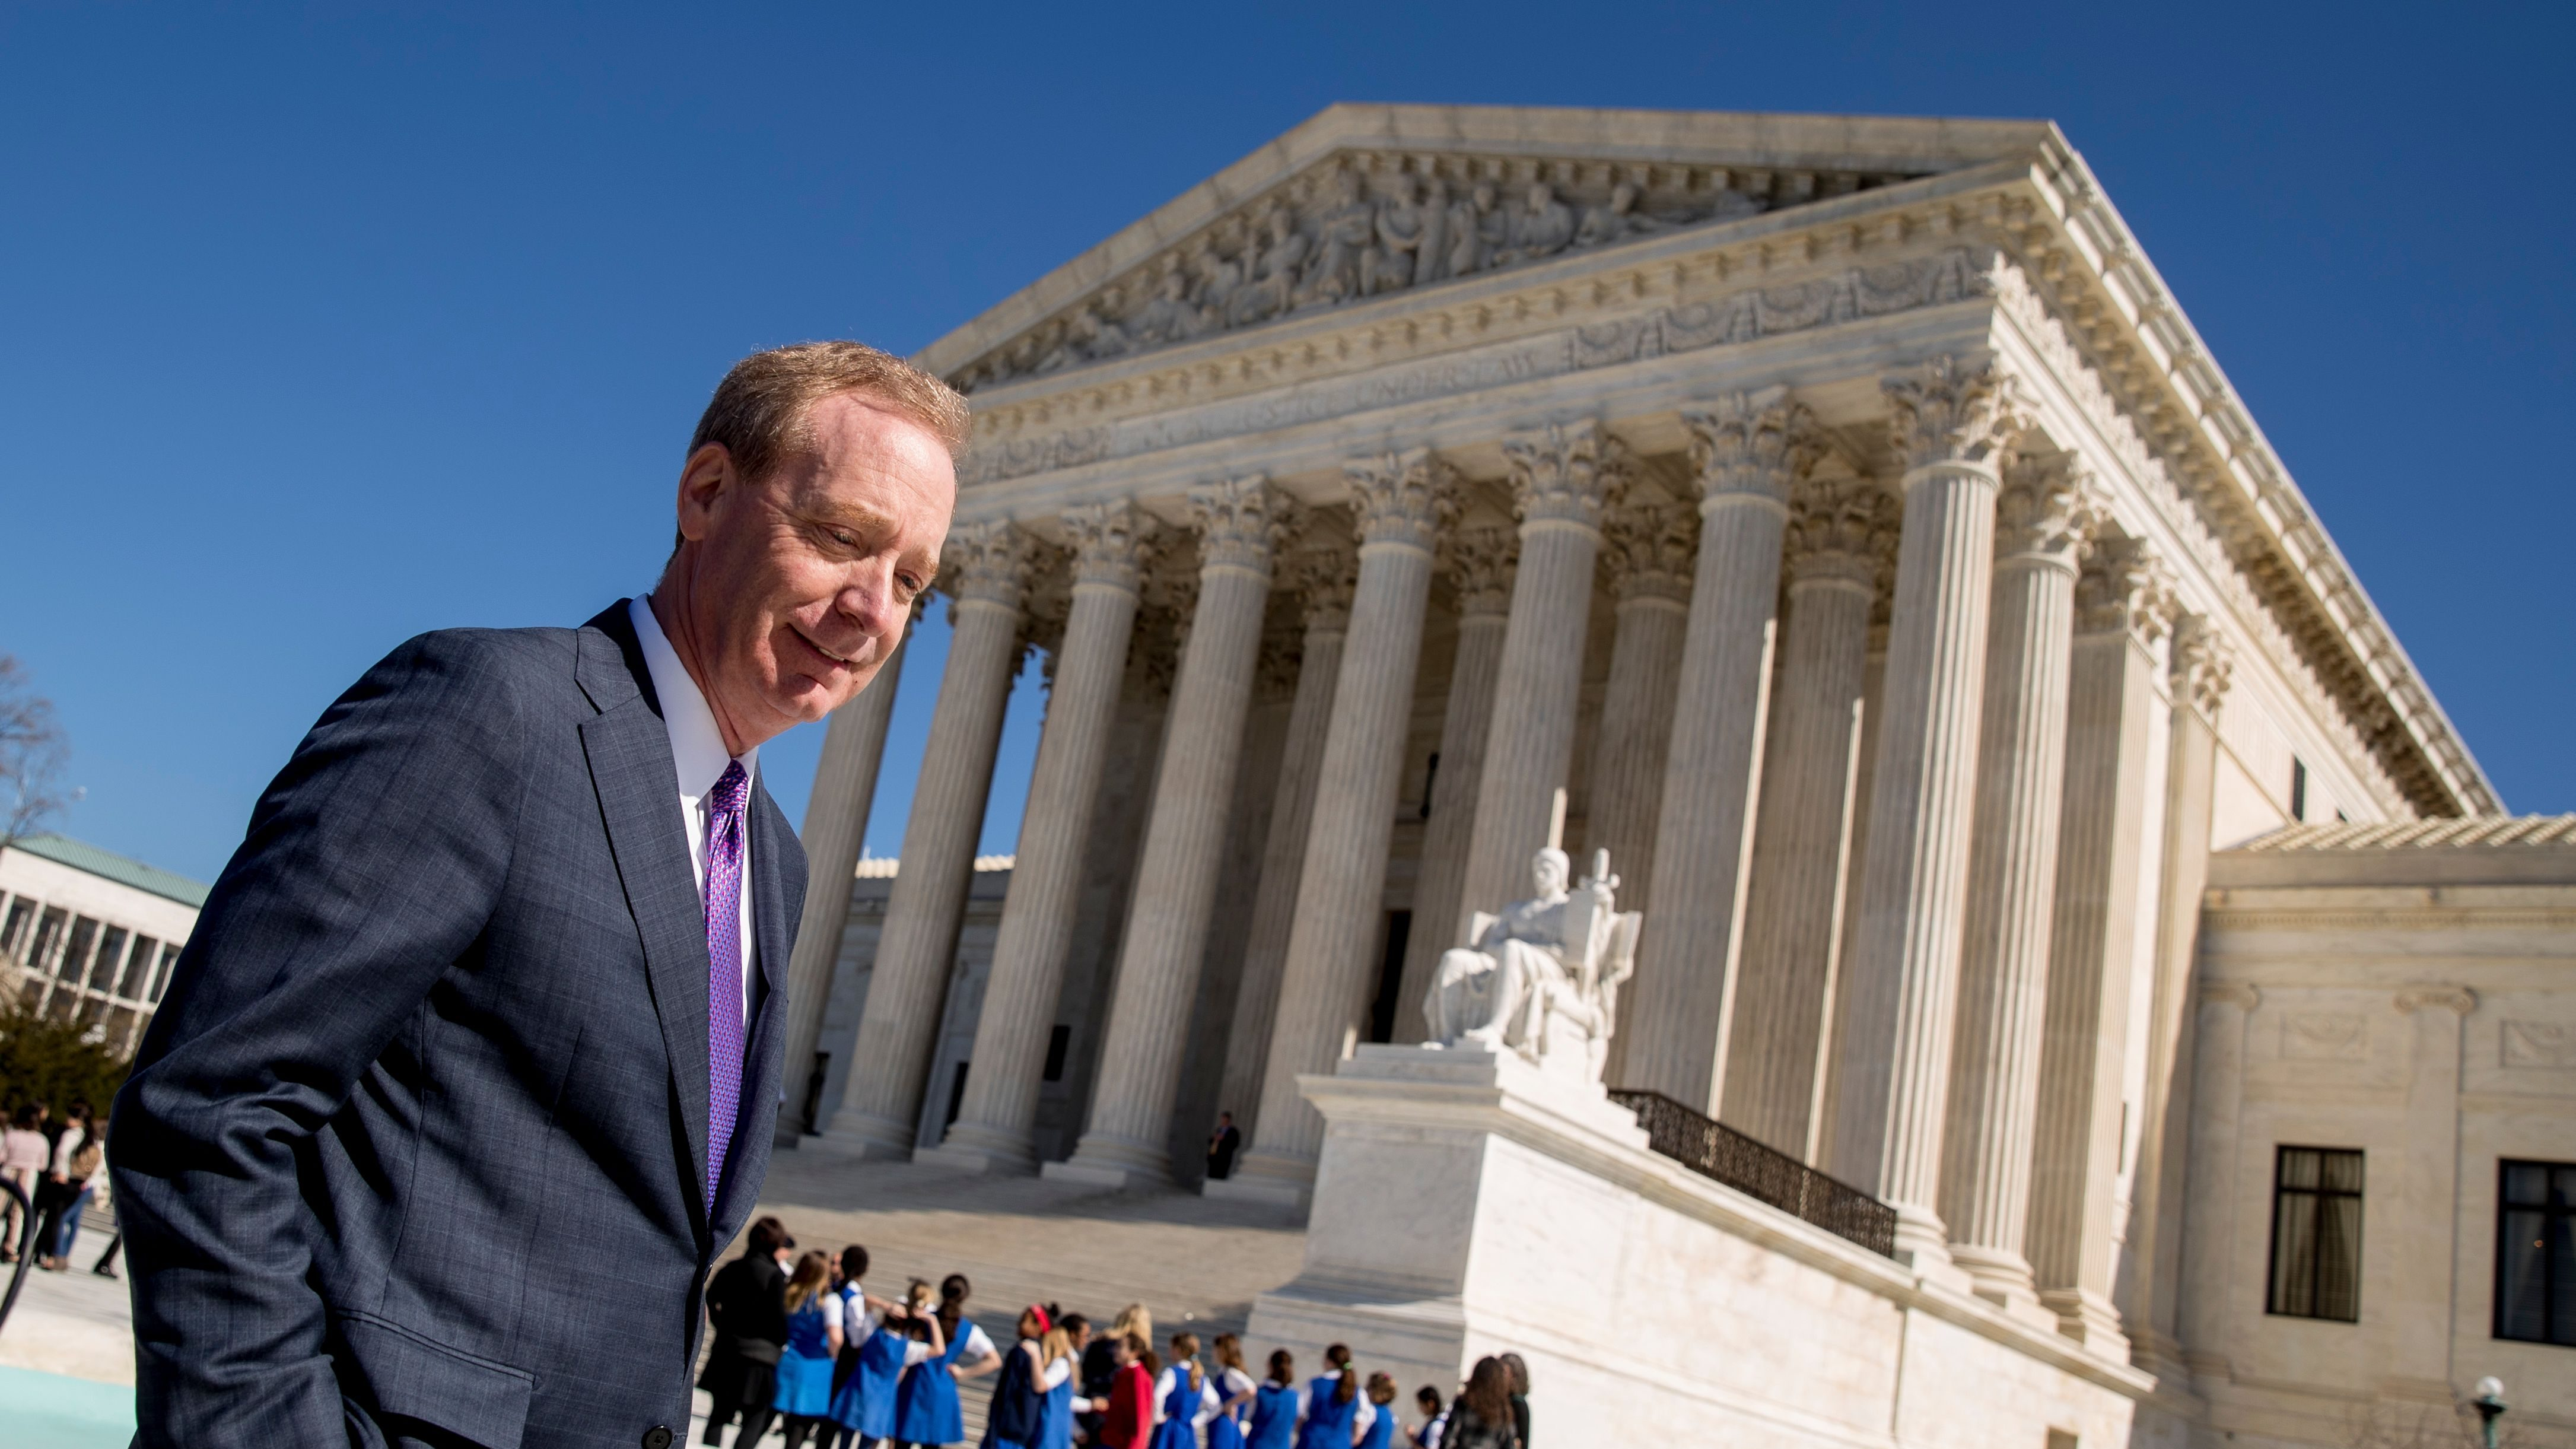 Microsoft President and Chief Legal Officer Brad Smith, left, leaves the Supreme Court, Tuesday, Feb. 27, 2018, in Washington. The Supreme Court heard arguments Tuesday in a dispute between the Trump administration and Microsoft Corp. over a warrant for emails that were sought as part of a drug trafficking investigation.(AP Photo/Andrew Harnik)